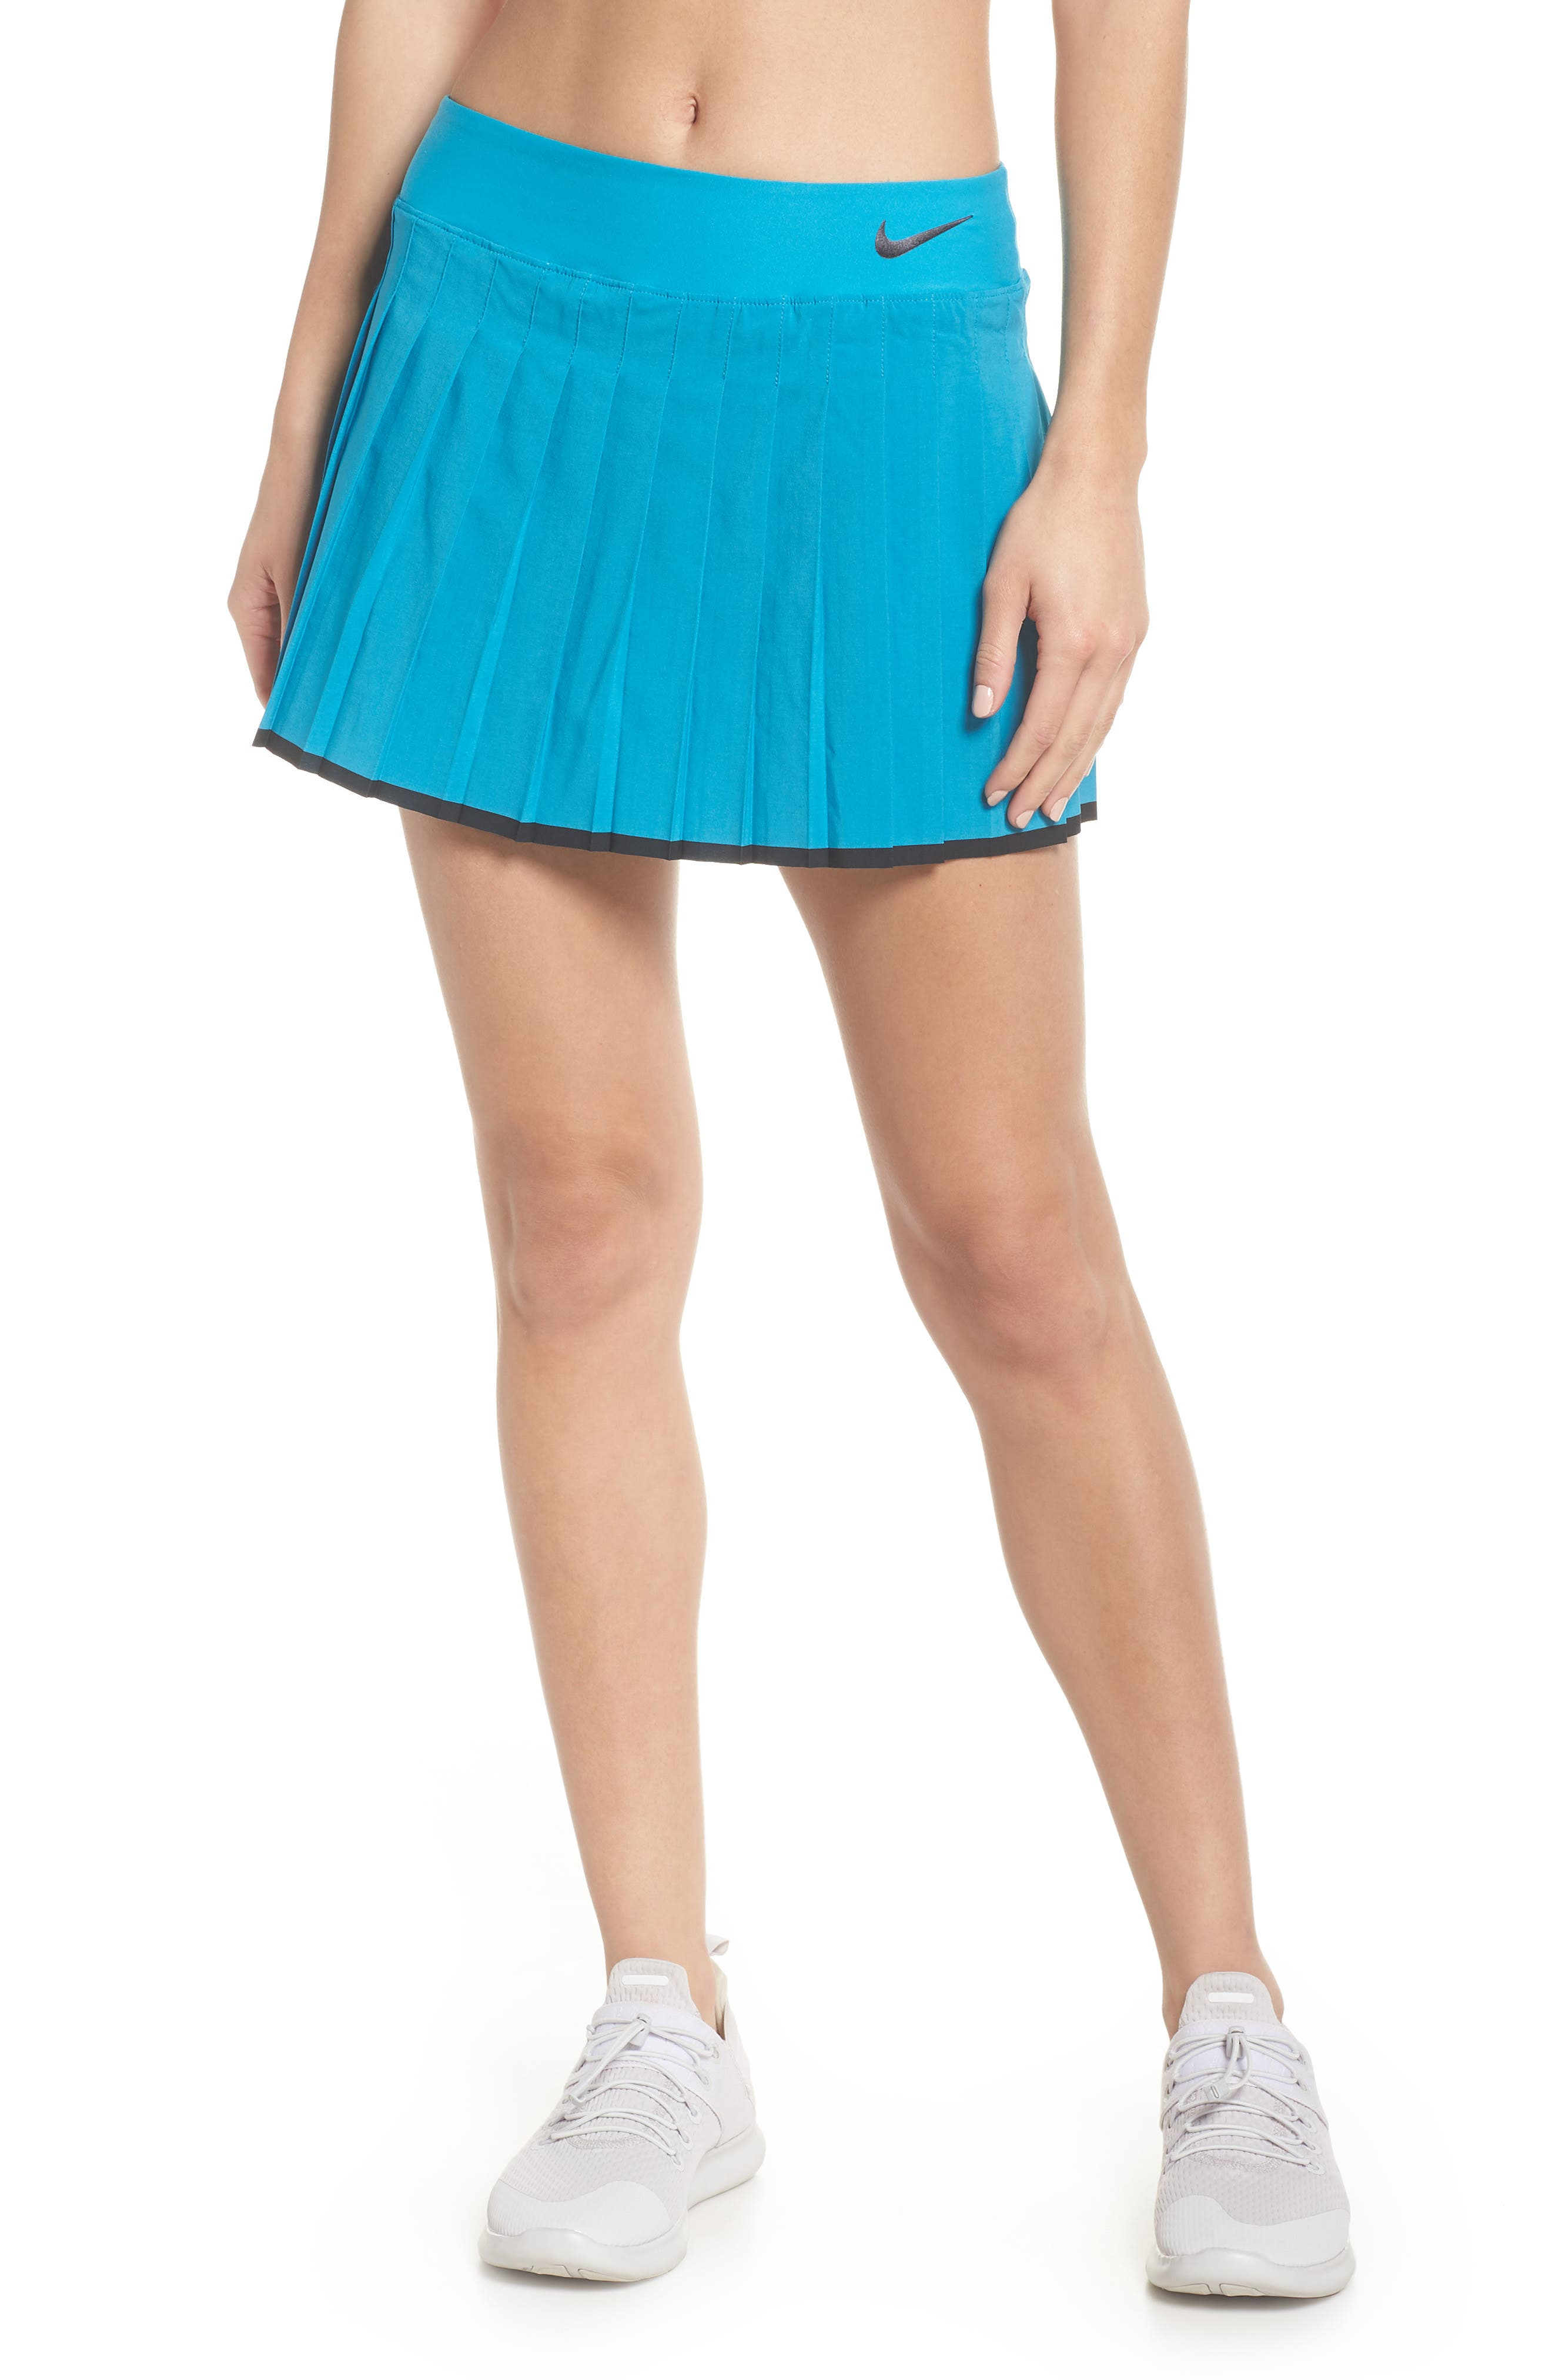 'Victory' Pleat Dri-FIT Tennis Skirt,                         Main,                         color, Neo Turquoise/ Black